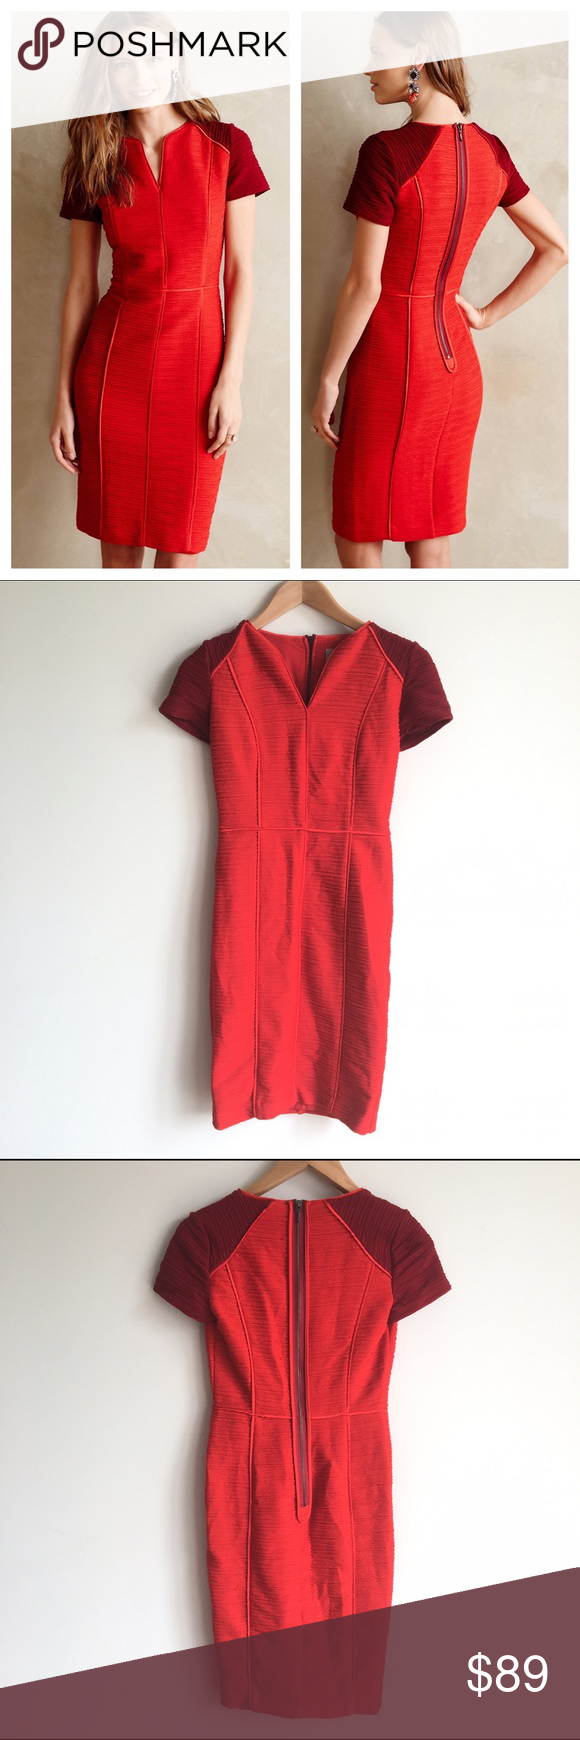 Anthropologie maeve red eunoia pencil dress anthropologie